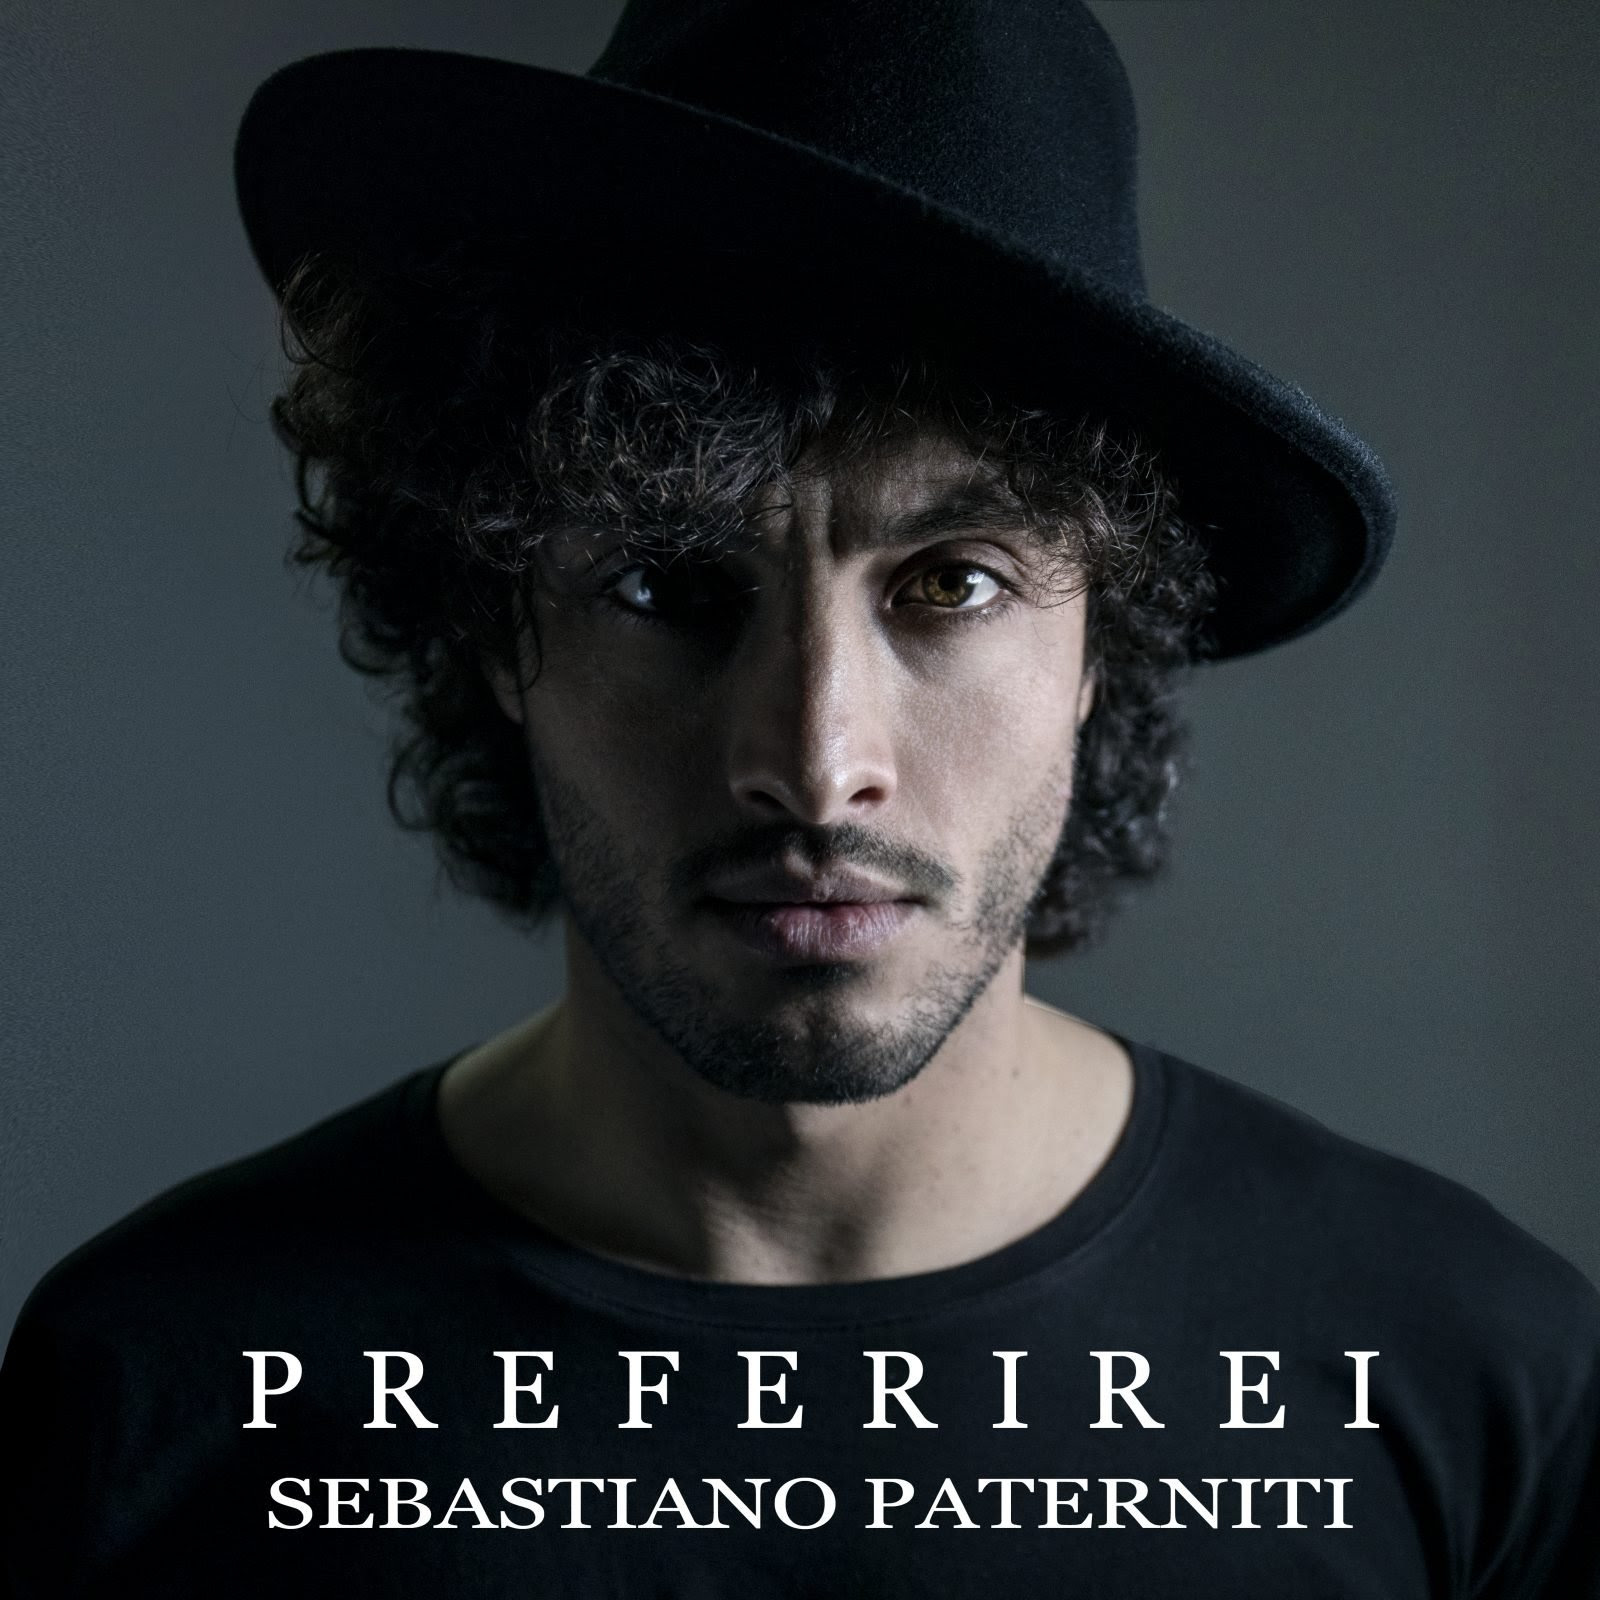 Preferirei, il debutto di Sebastiano Paterniti